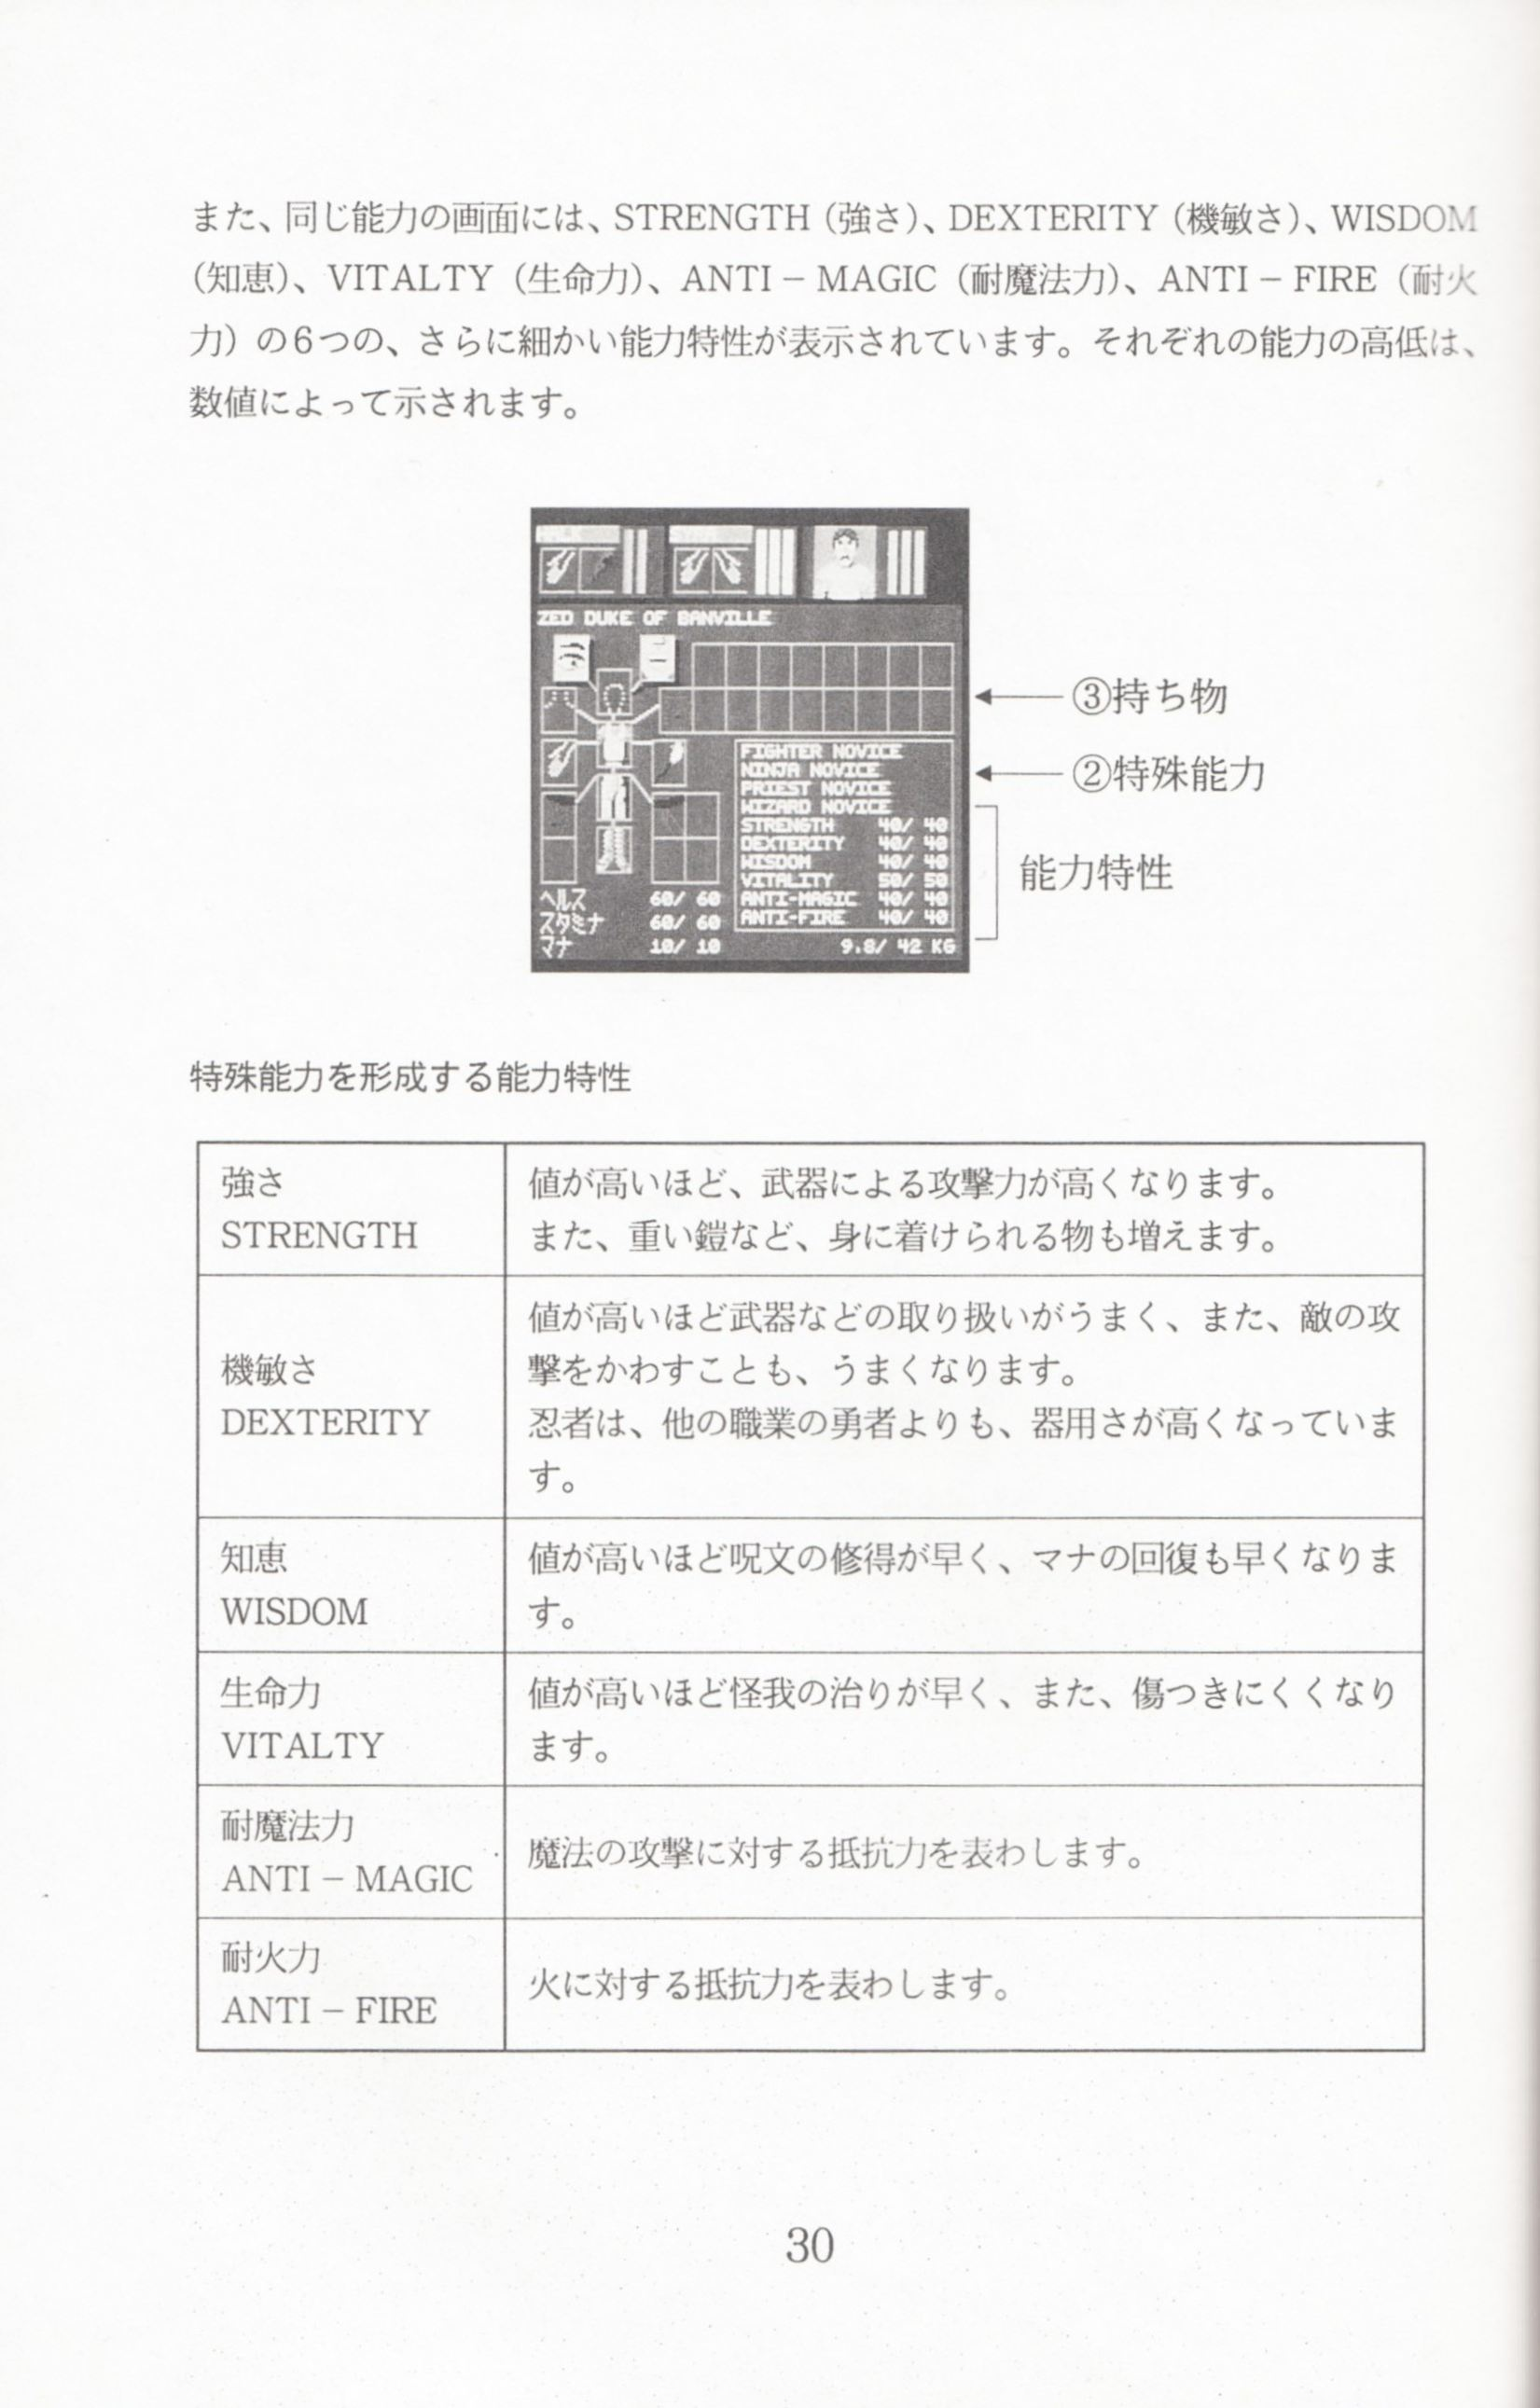 Game - Dungeon Master - JP - PC-9801 - 5.25-inch - Manual - Page 032 - Scan